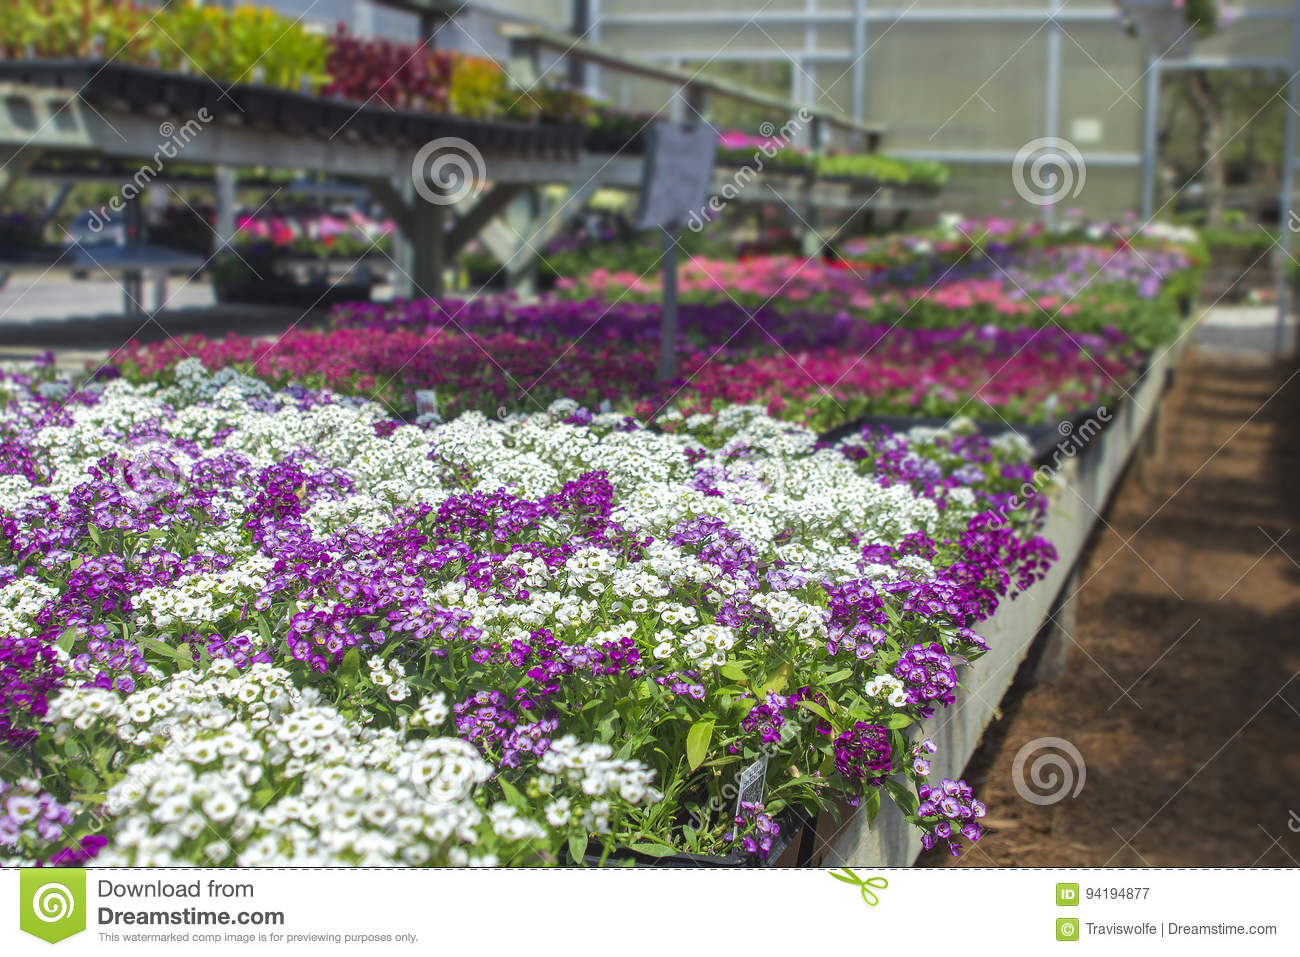 Spring Flowers Open Air Freshly Organized With Organic Growing In